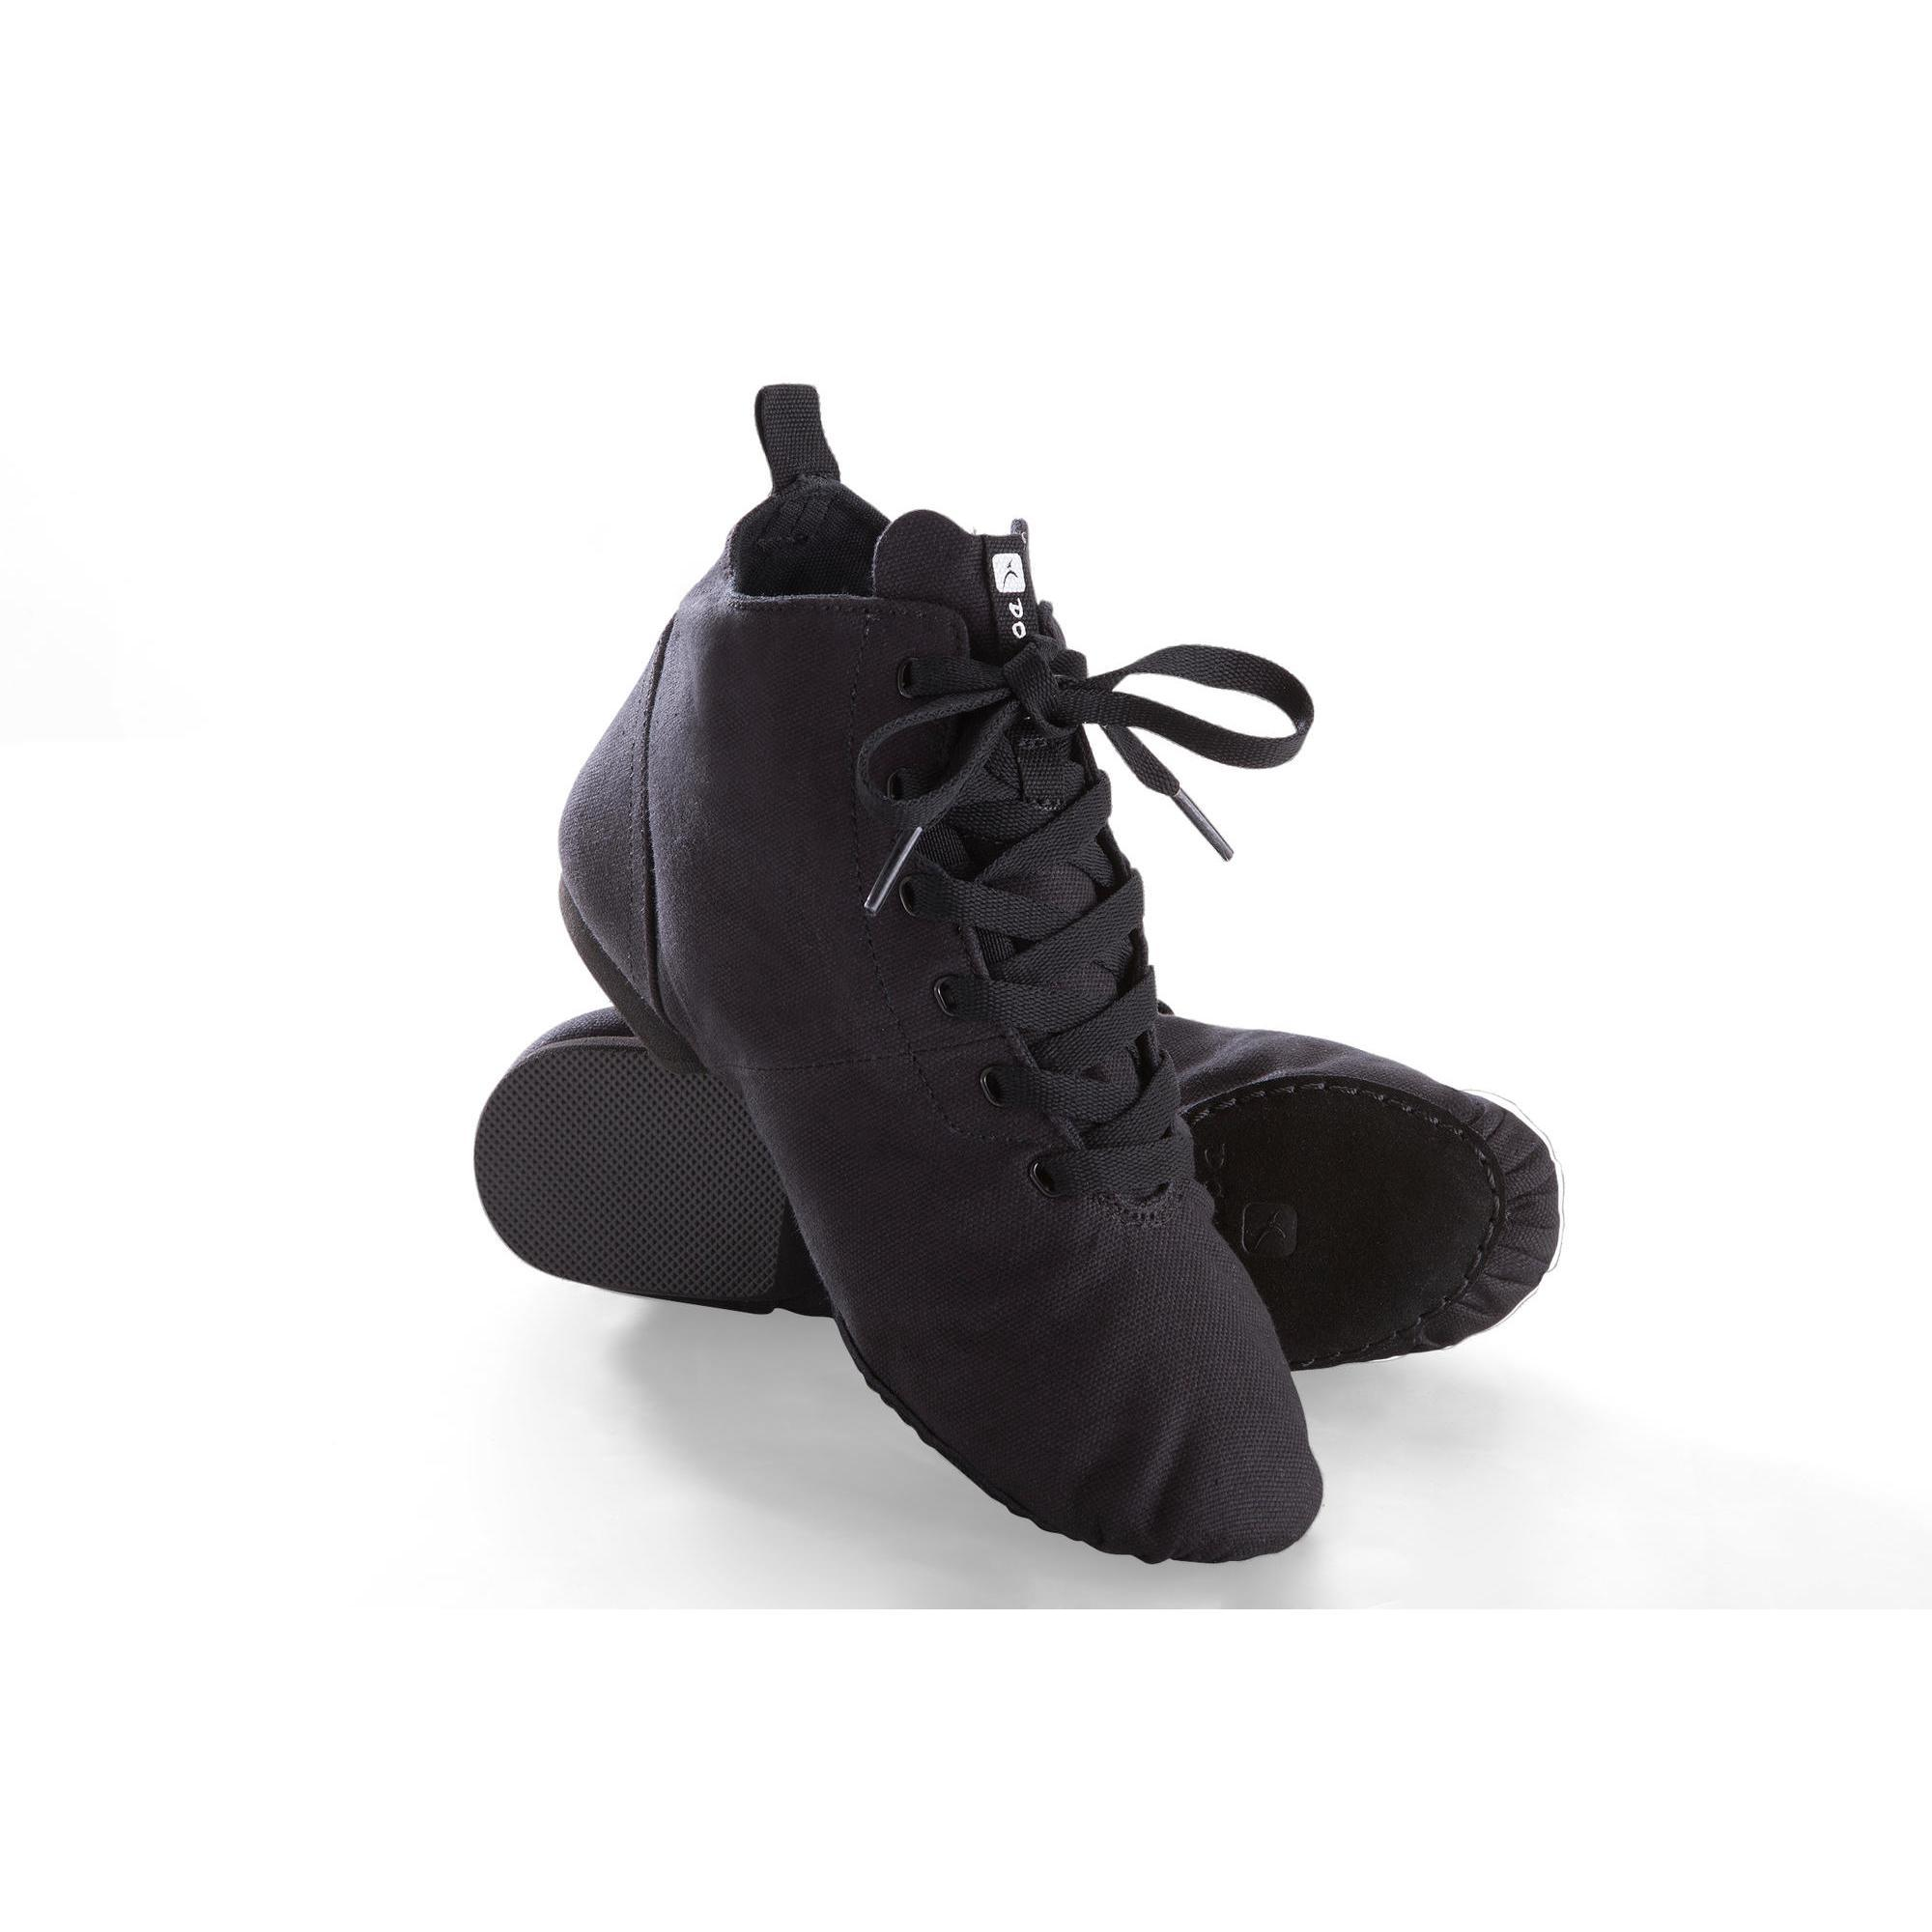 Domyos Chaussures Noires Pour Les Hommes 00ncdswxA